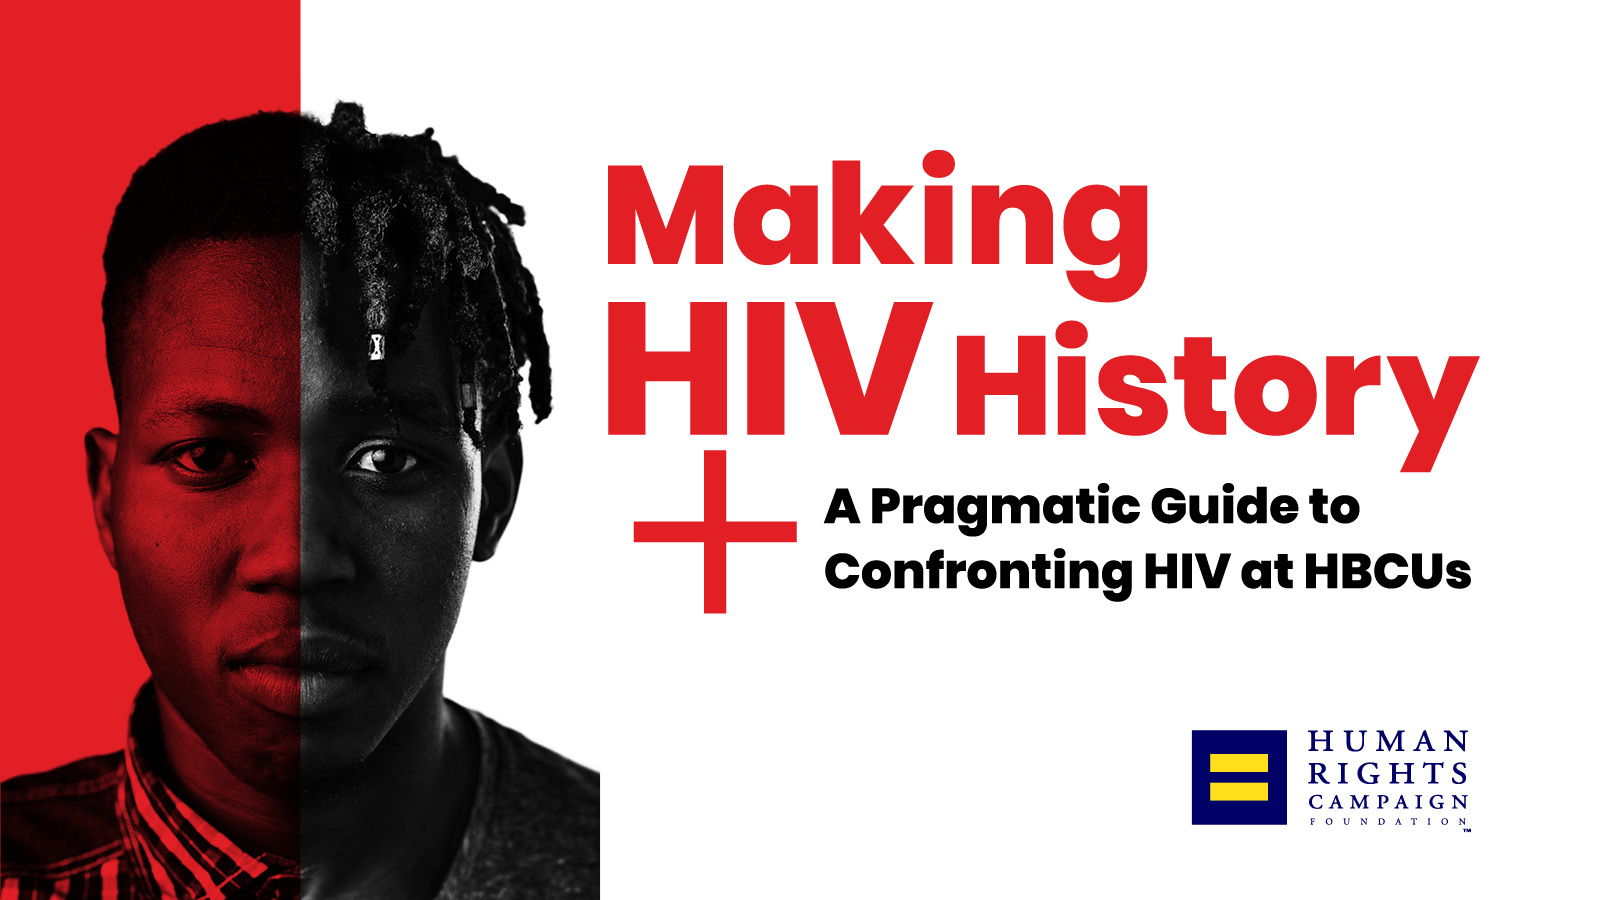 HRC Releases New Comprehensive Guide for HIV Prevention, Treatment and Care on HBCU Campuses